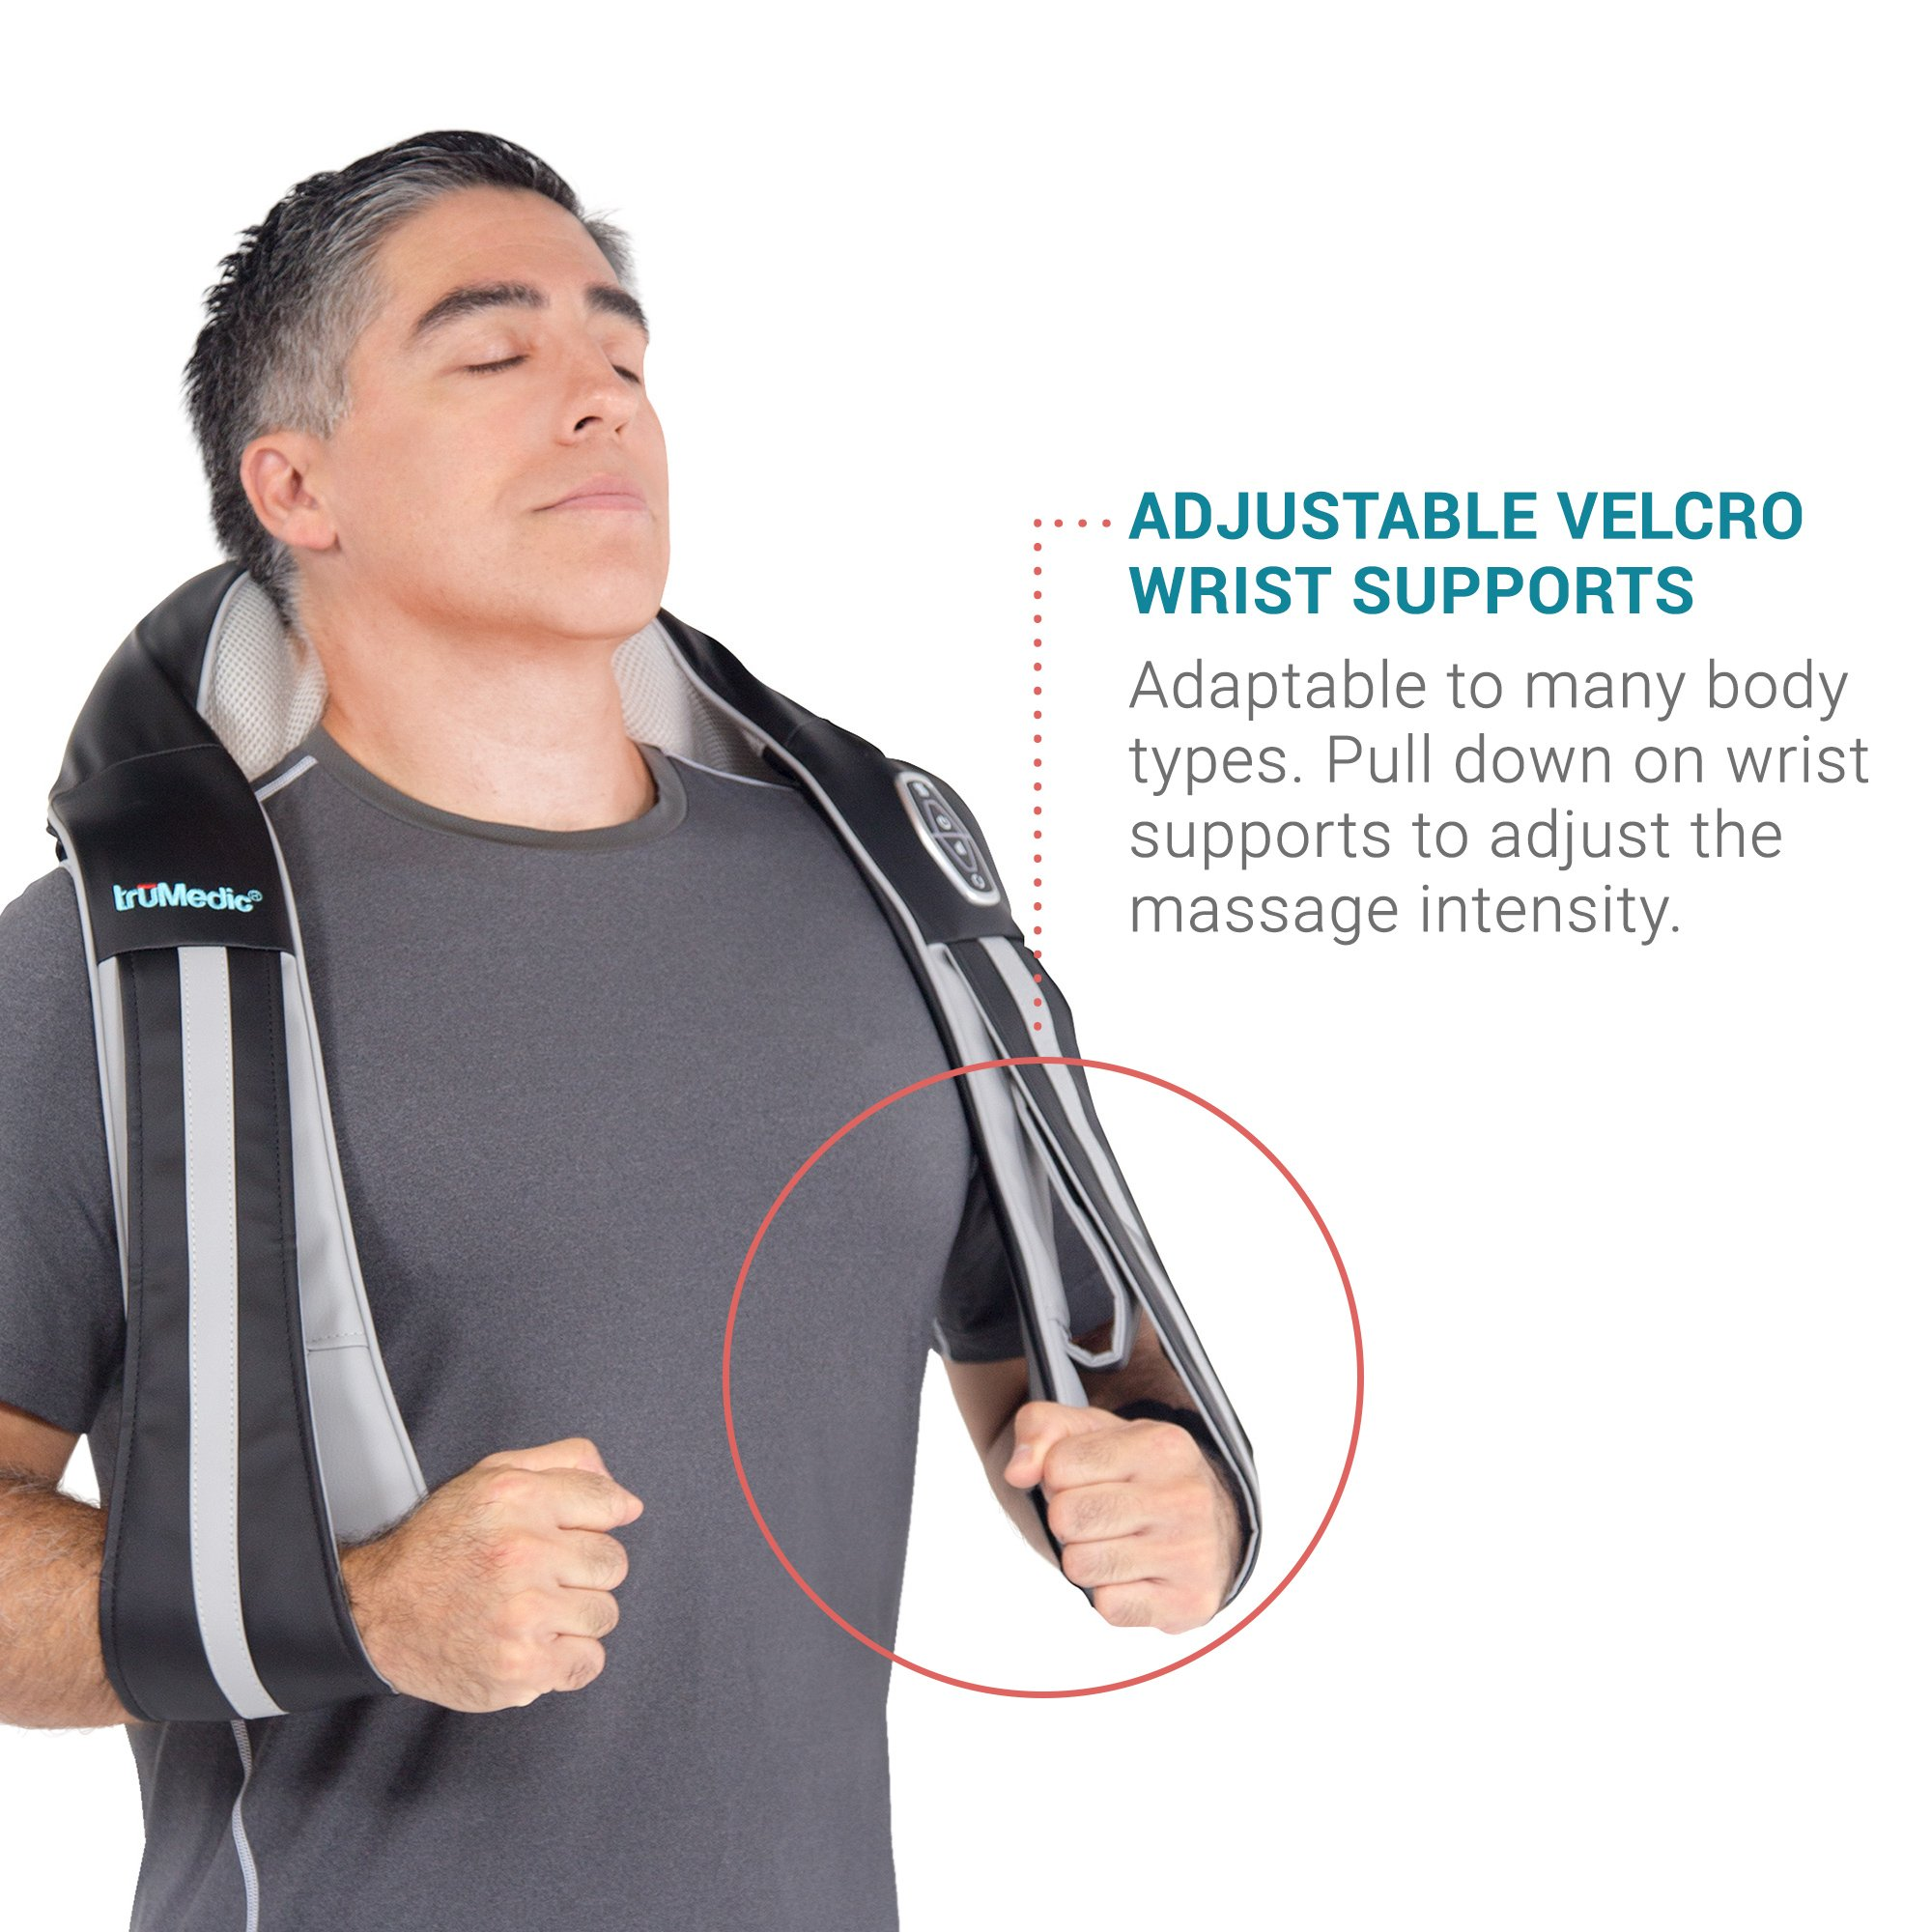 InstaShiatsu+ Neck, Shoulder & Full Body Massager with Heat, Model # IS-3000PRO, 3 Massage Speeds, Cordless & Rechargeable, Use at Home & Office, by TruMedic by truMedic (Image #5)